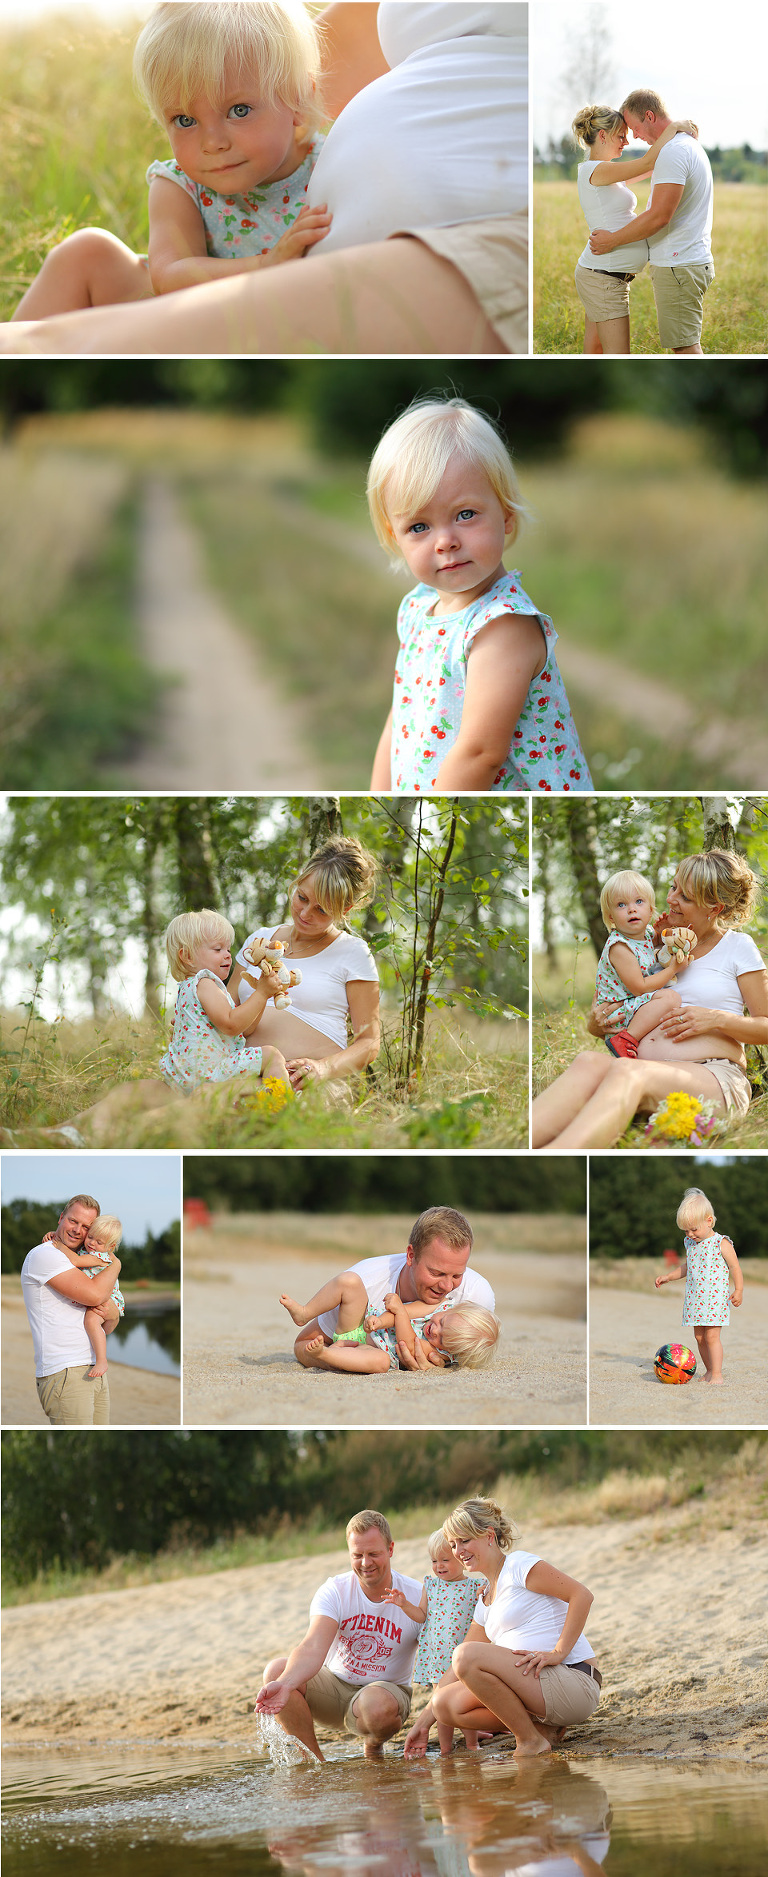 Shooting_Familie_Kind_Babybauch_Dominic_Schulz_Outdoor_2